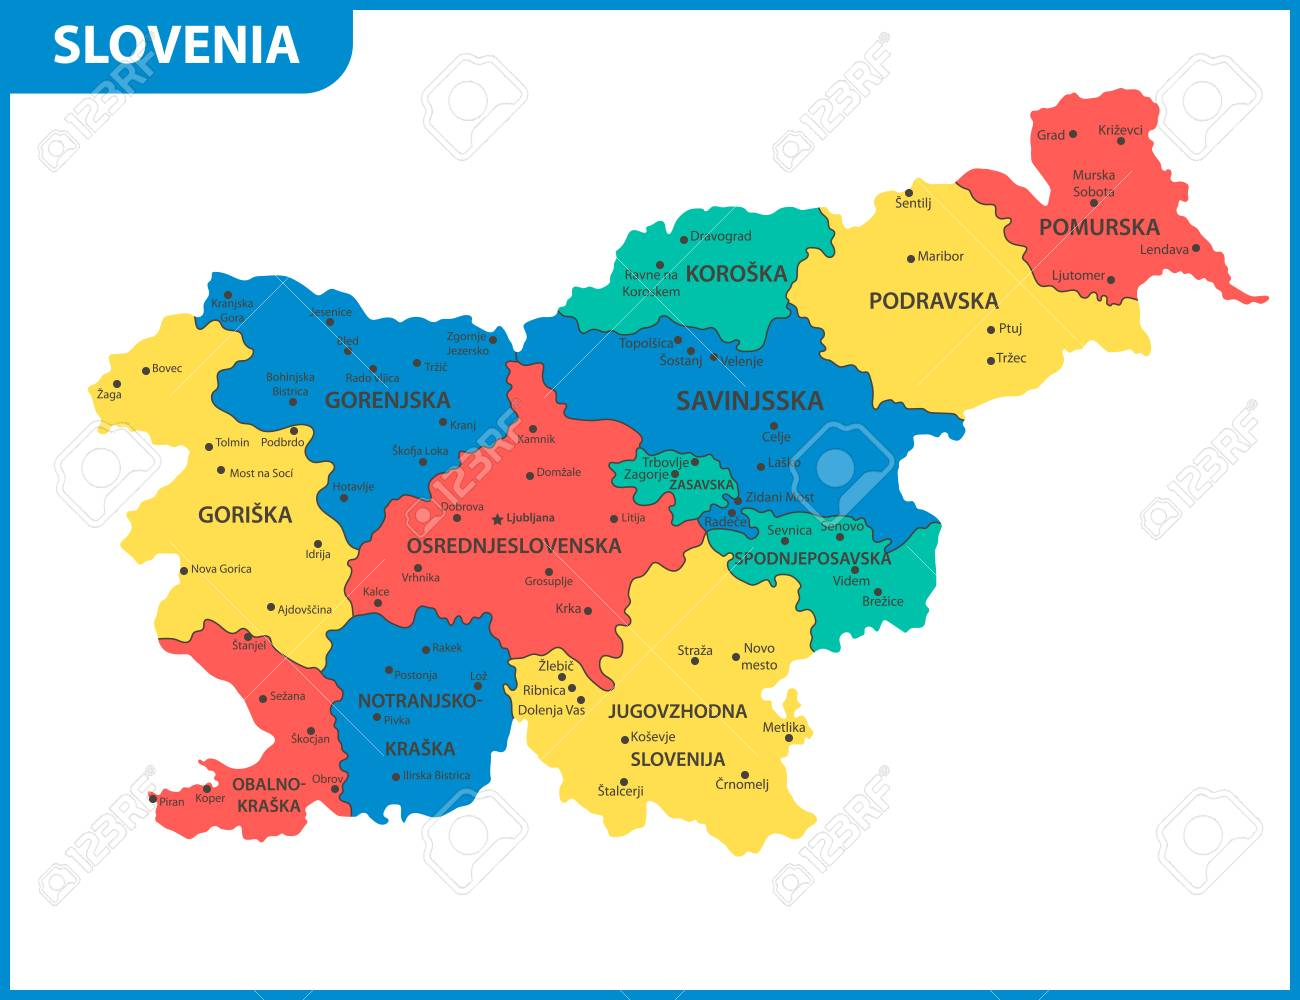 States Map With Cities.The Detailed Map Of Slovenia With Regions Or States And Cities